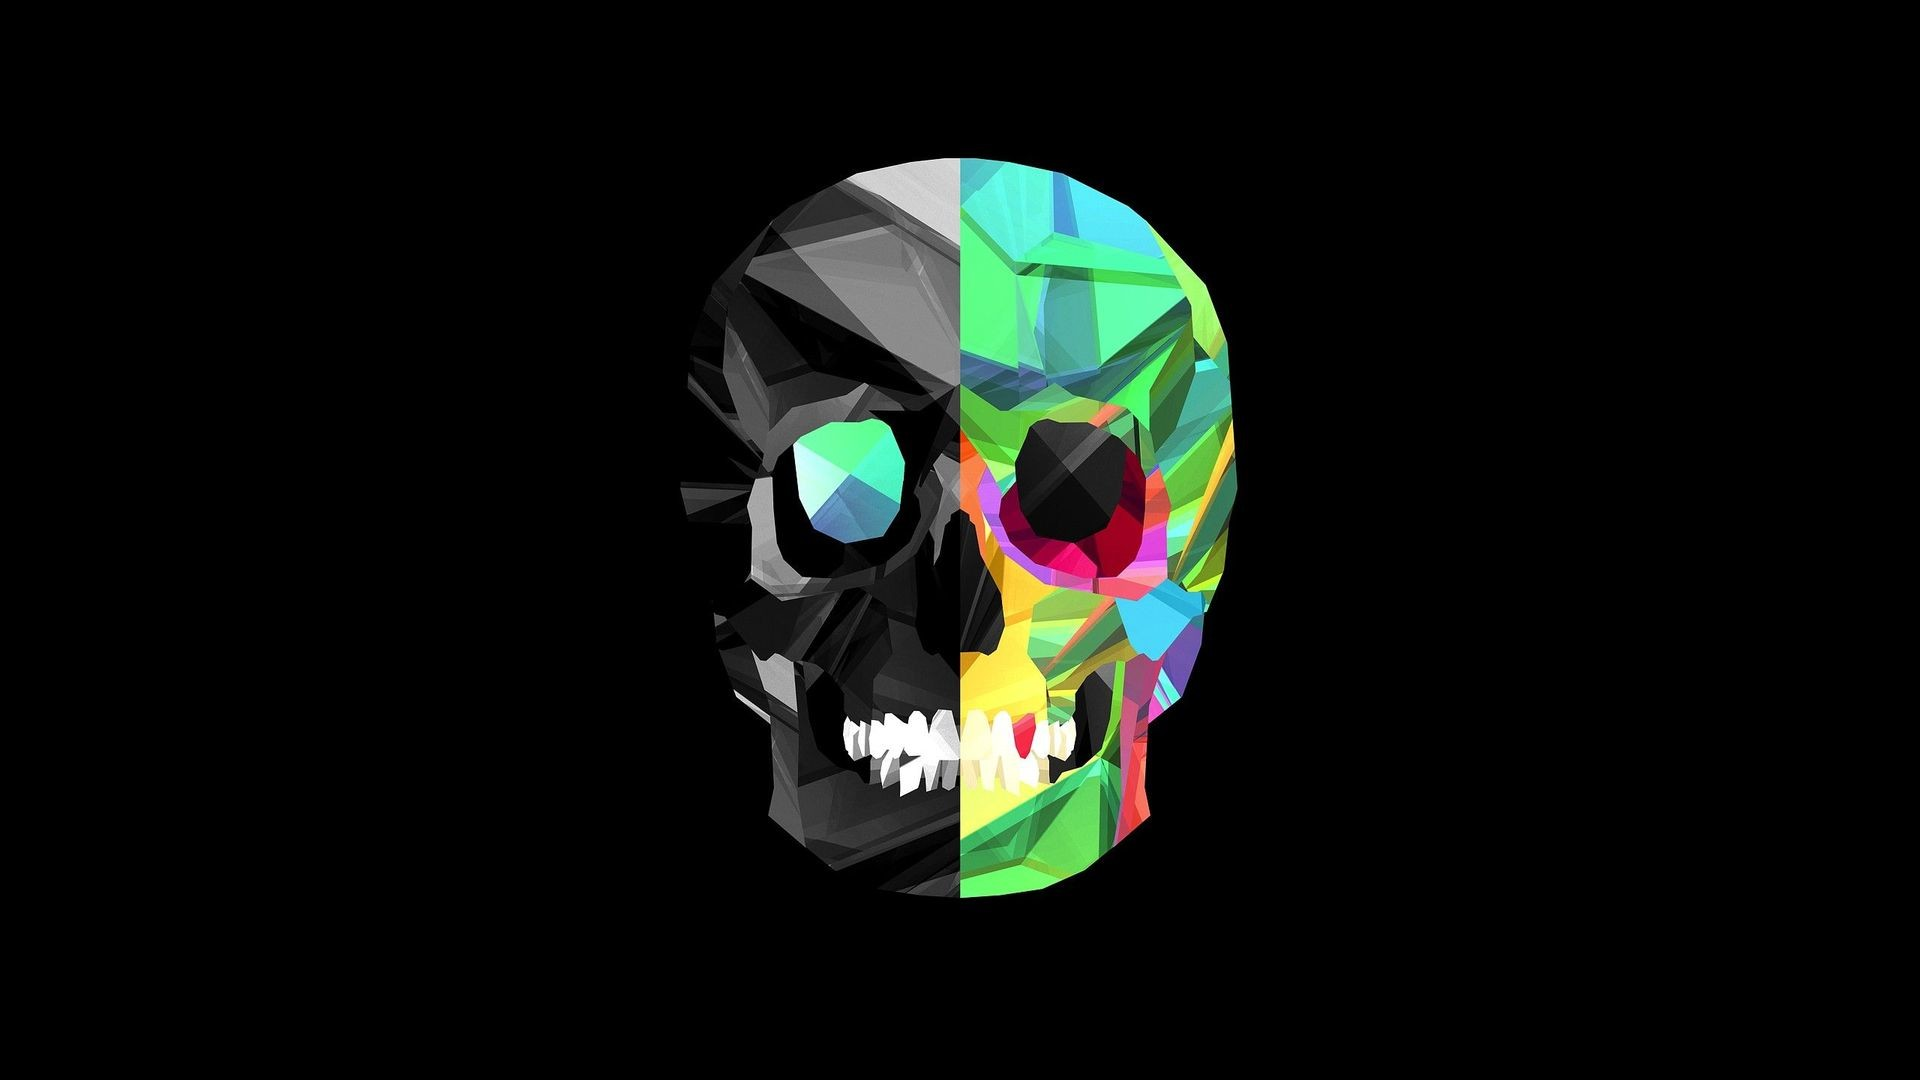 Awesome Skull Wallpapers  51  images  1920x1080 Awesome Skull Backgrounds 1680       1050 Awesome skull backgrounds   43 Wallpapers    Adorable